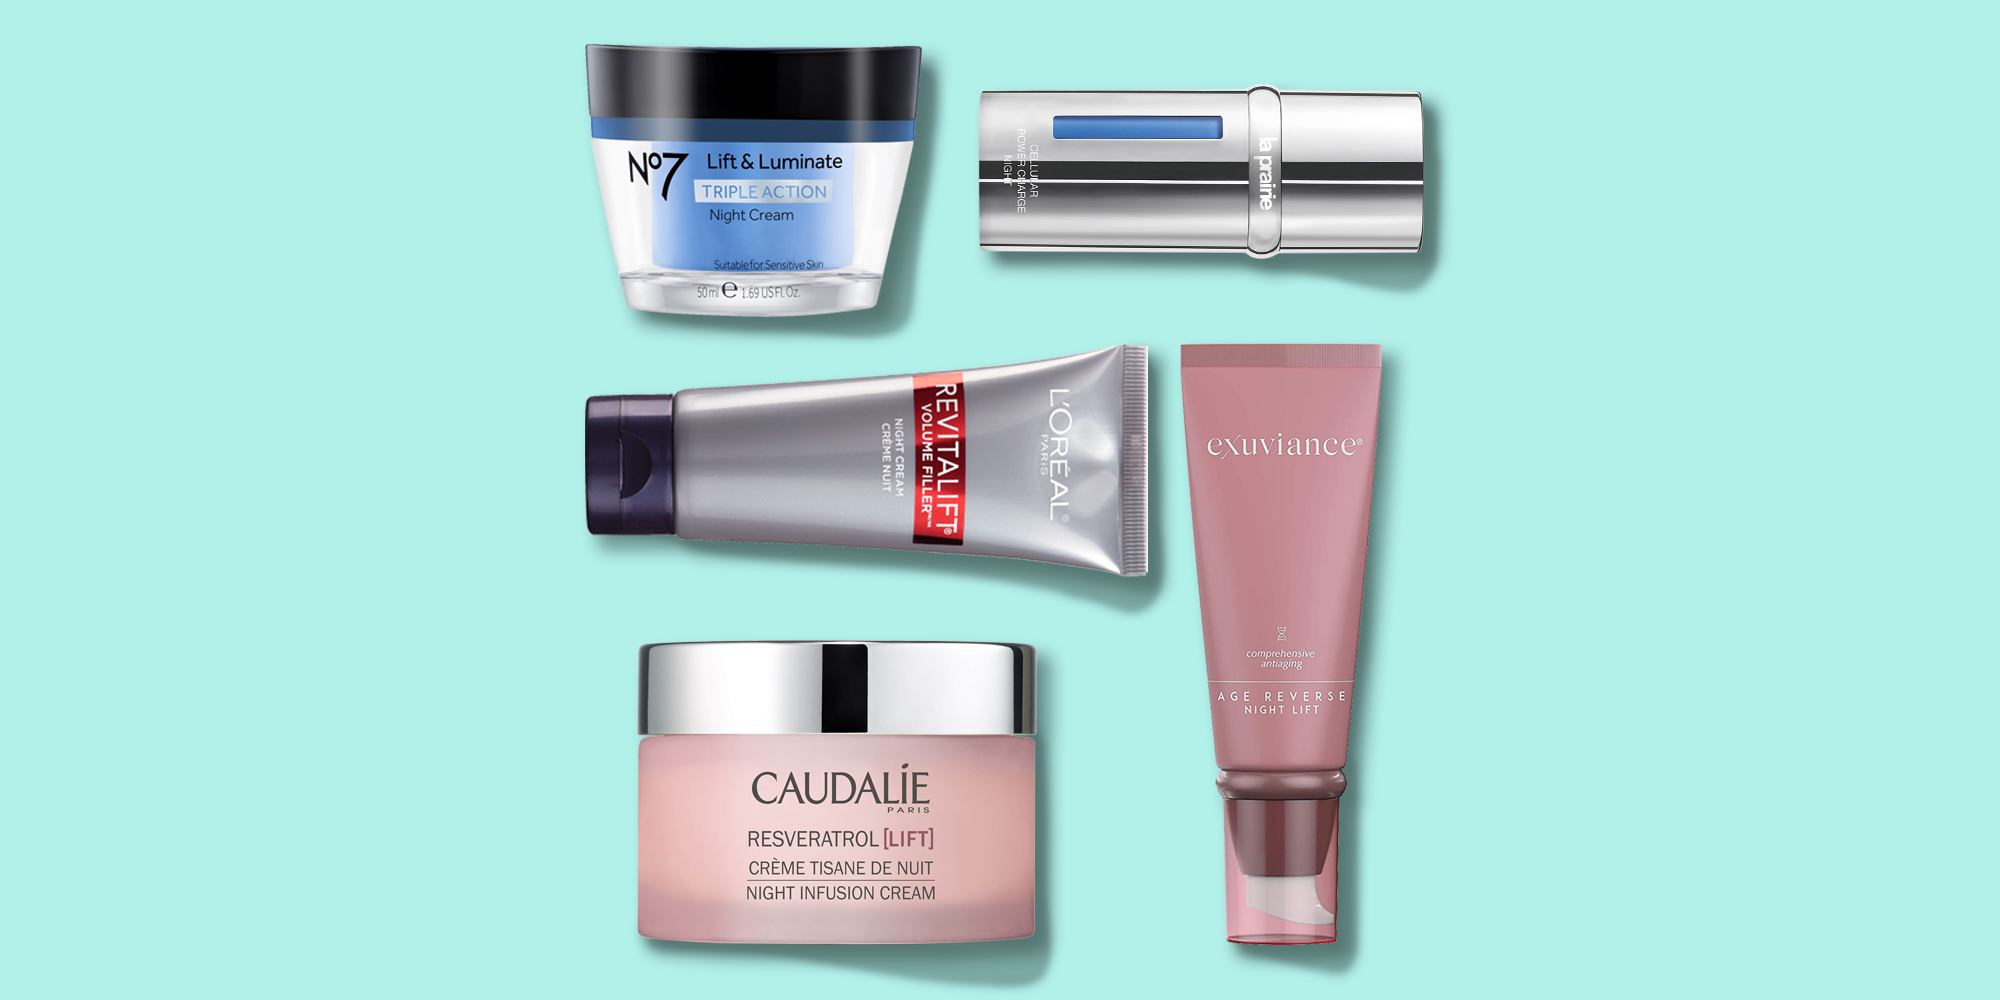 12 Best Night Creams 12 - Top Overnight Creams for Anti-Aging